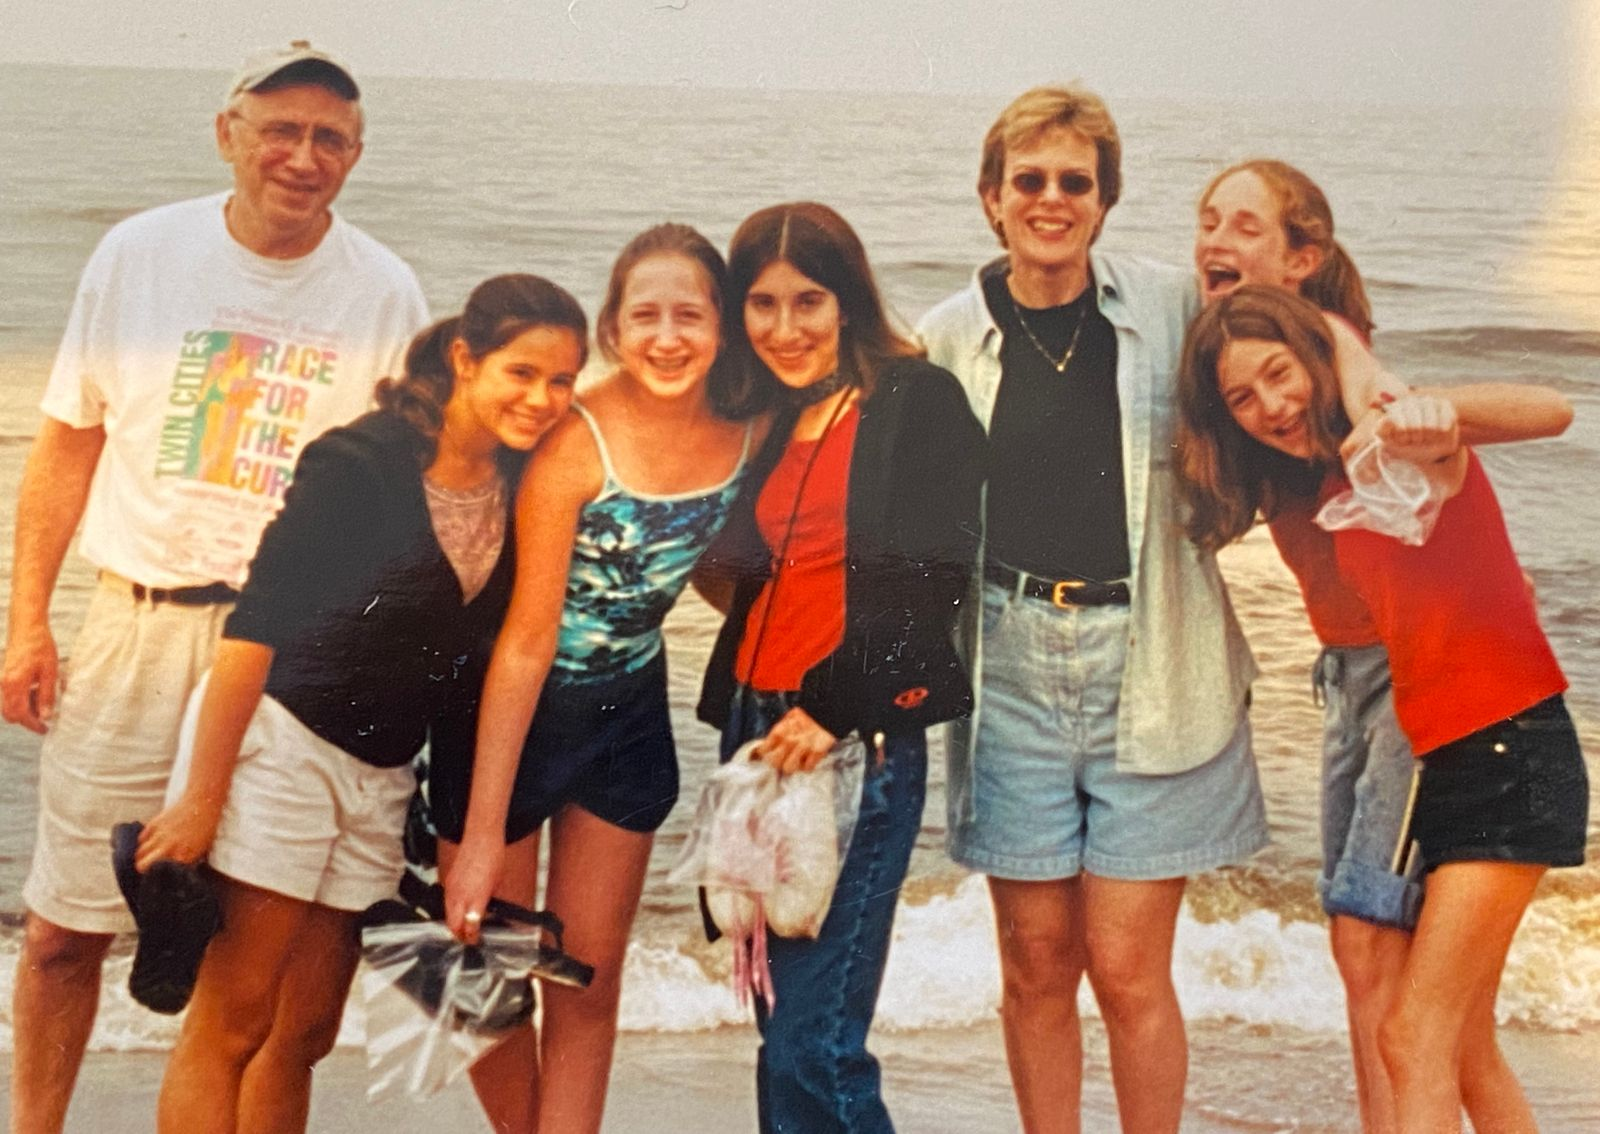 Rather than a Bat Mitzvah party, Abby wanted to take her close friends on a trip. Kathy and David took the girls to Duluth, 2001.